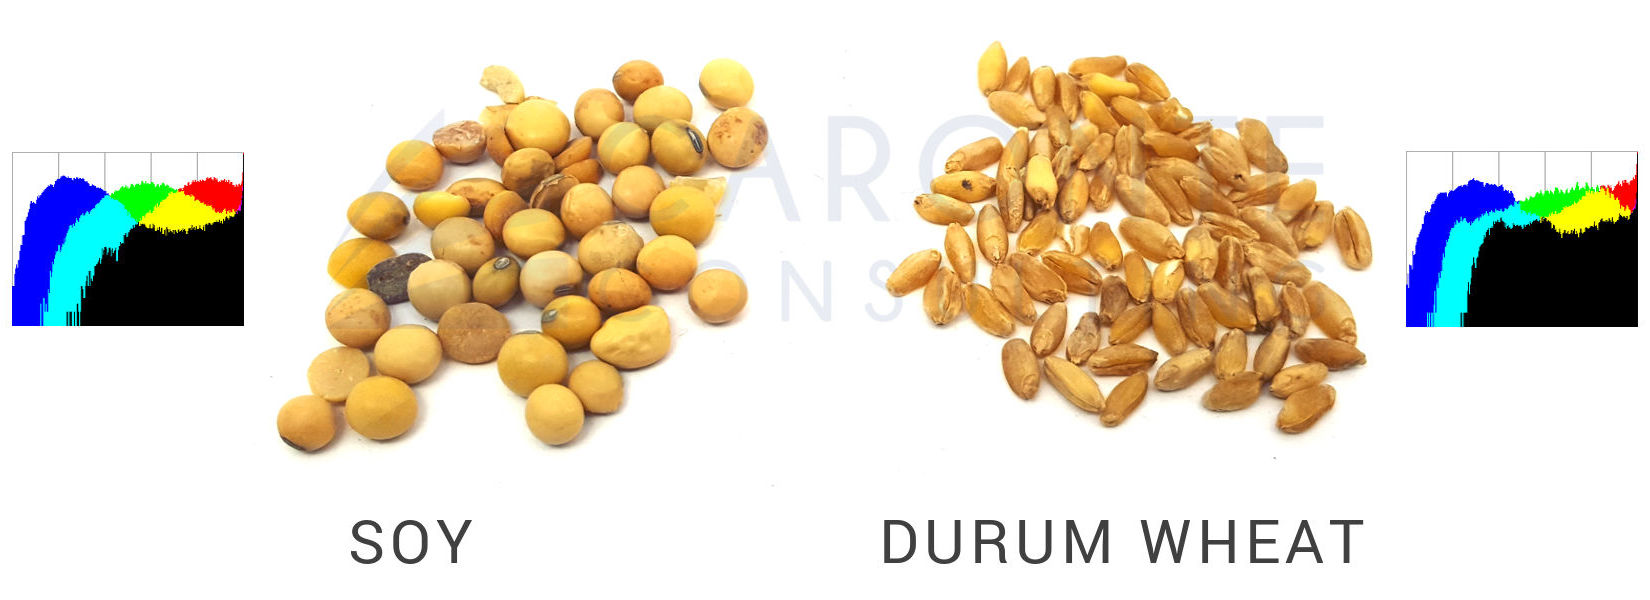 Artificial Vision - Soy and durum wheat